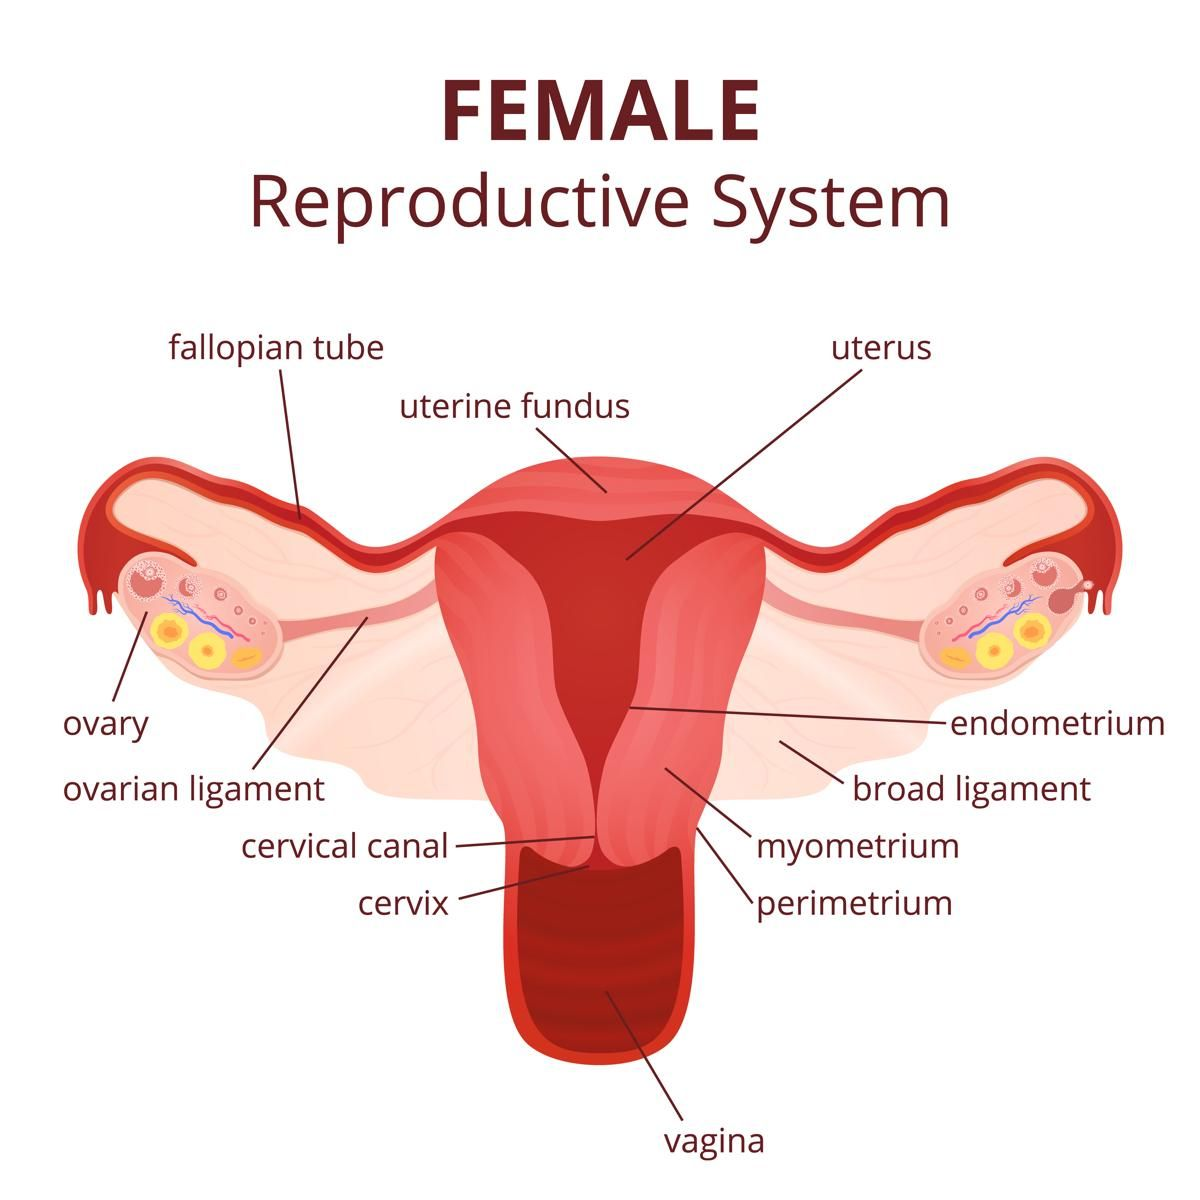 hight resolution of diagram of uterus and fallopian tubes diagram of uterus and fallopian tubes labeled diagram of